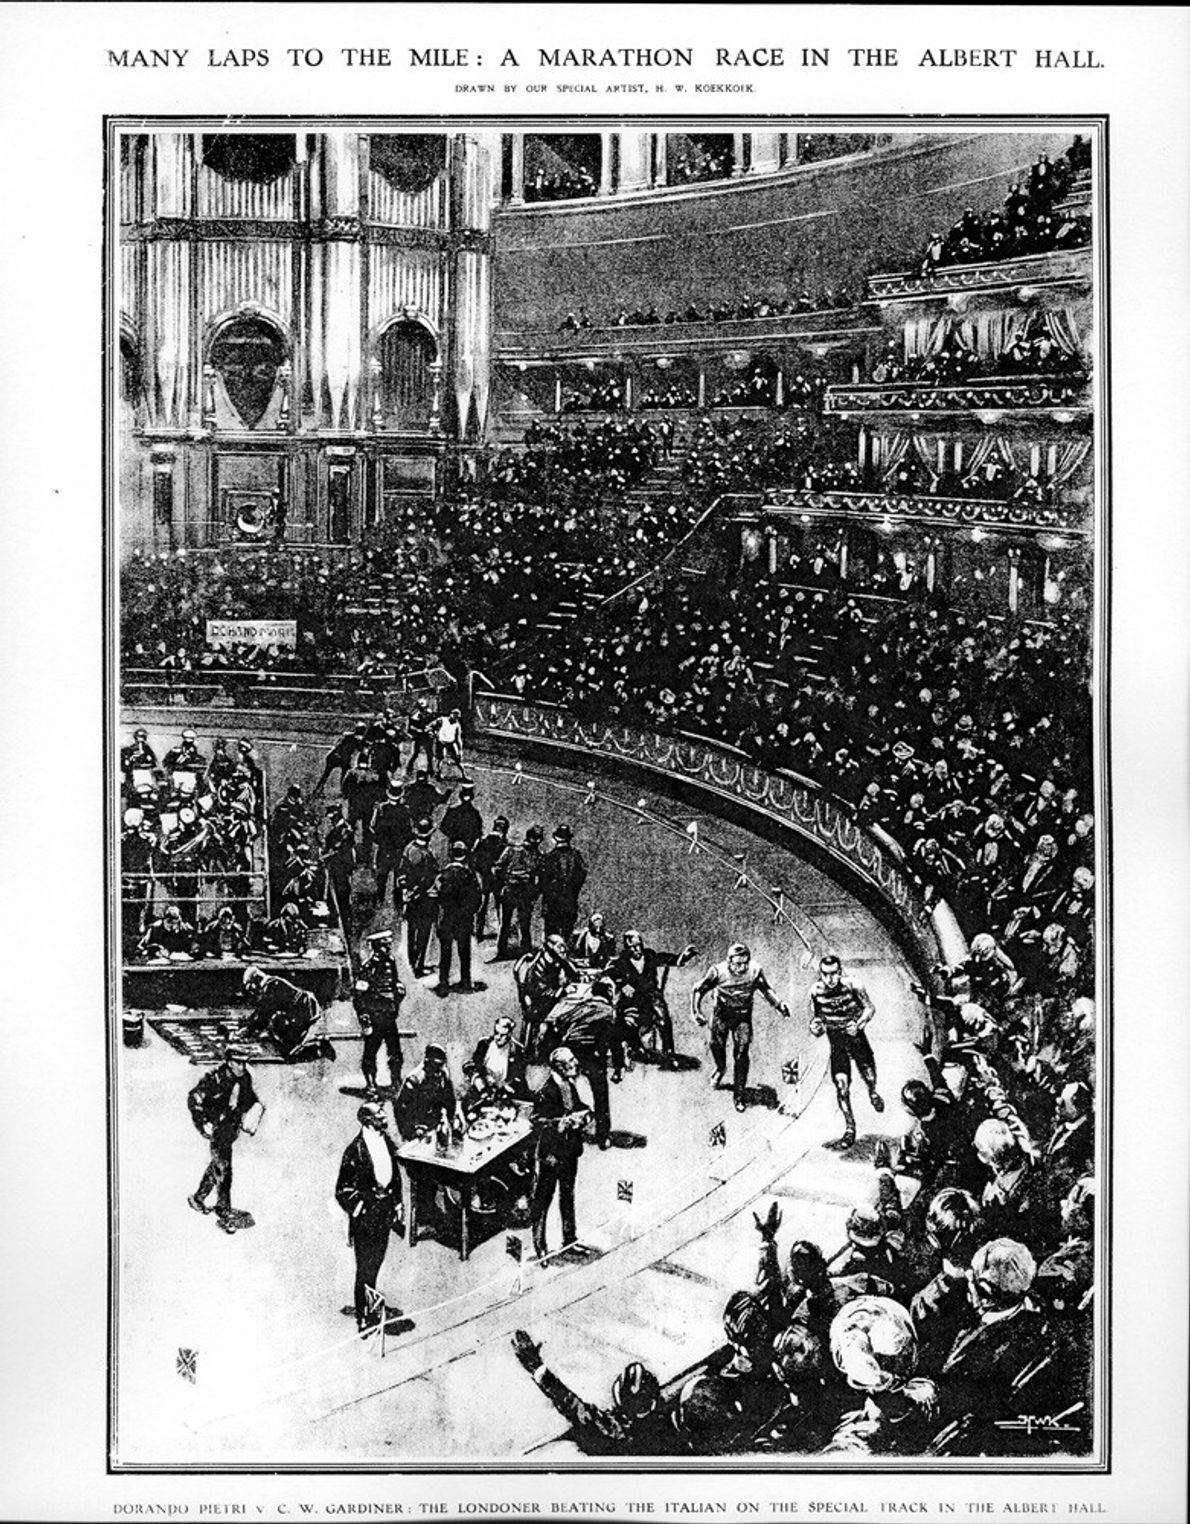 Sporting events such as the first indoor marathon in 1909 have been a part of the ...